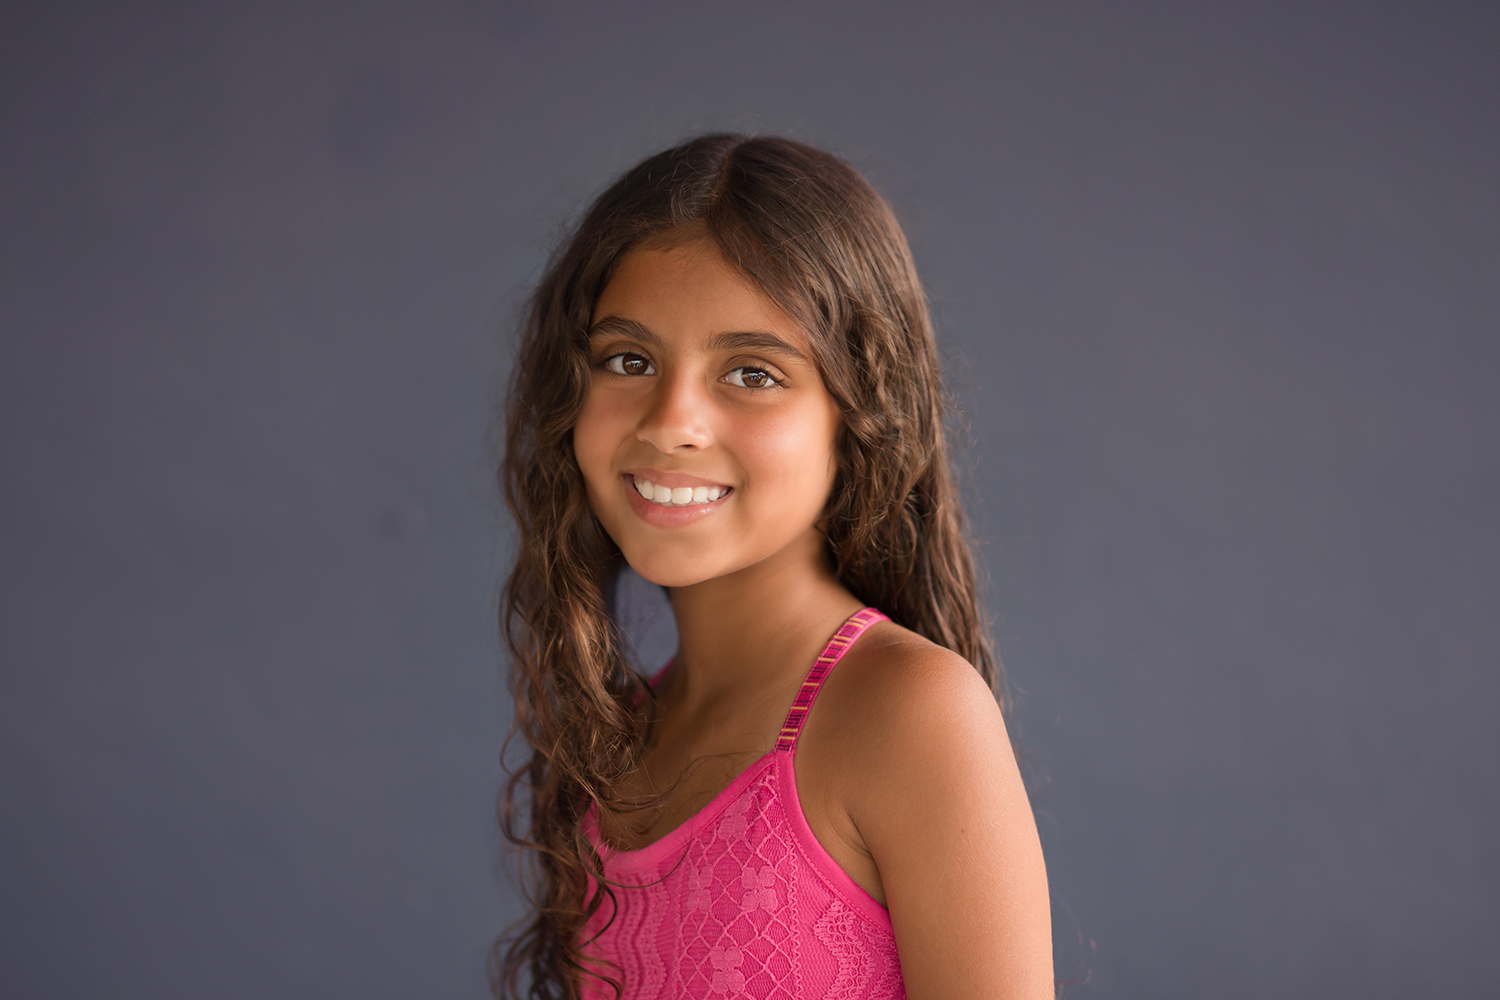 boca-raton-child-photographer-kid-model-head-shot-headshot-headshots-parkland-coral-springs-miami-fort-lauderdale-alissa-delucca-photography-actress.jpg